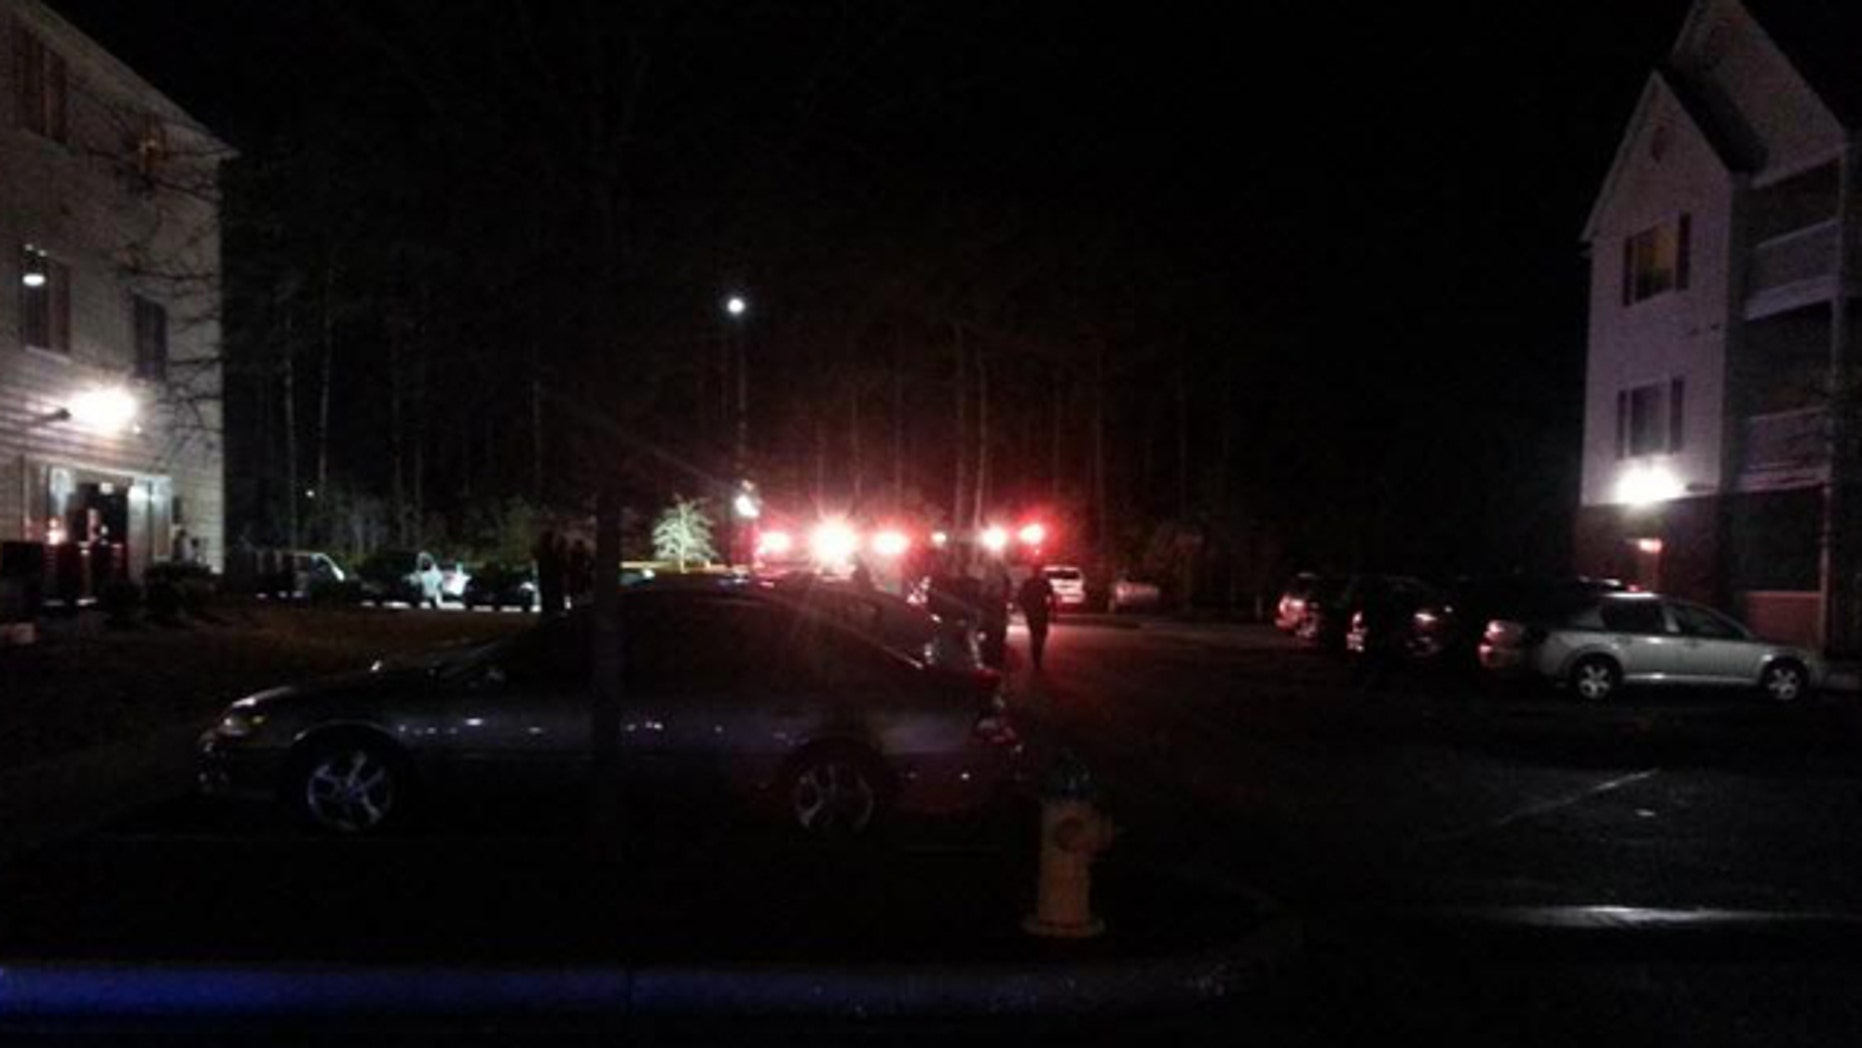 Feb. 26, 2013: Authorities surround the scene of a shooting at an off-campus housing complex near Coastal Carolina University in South Carolina.